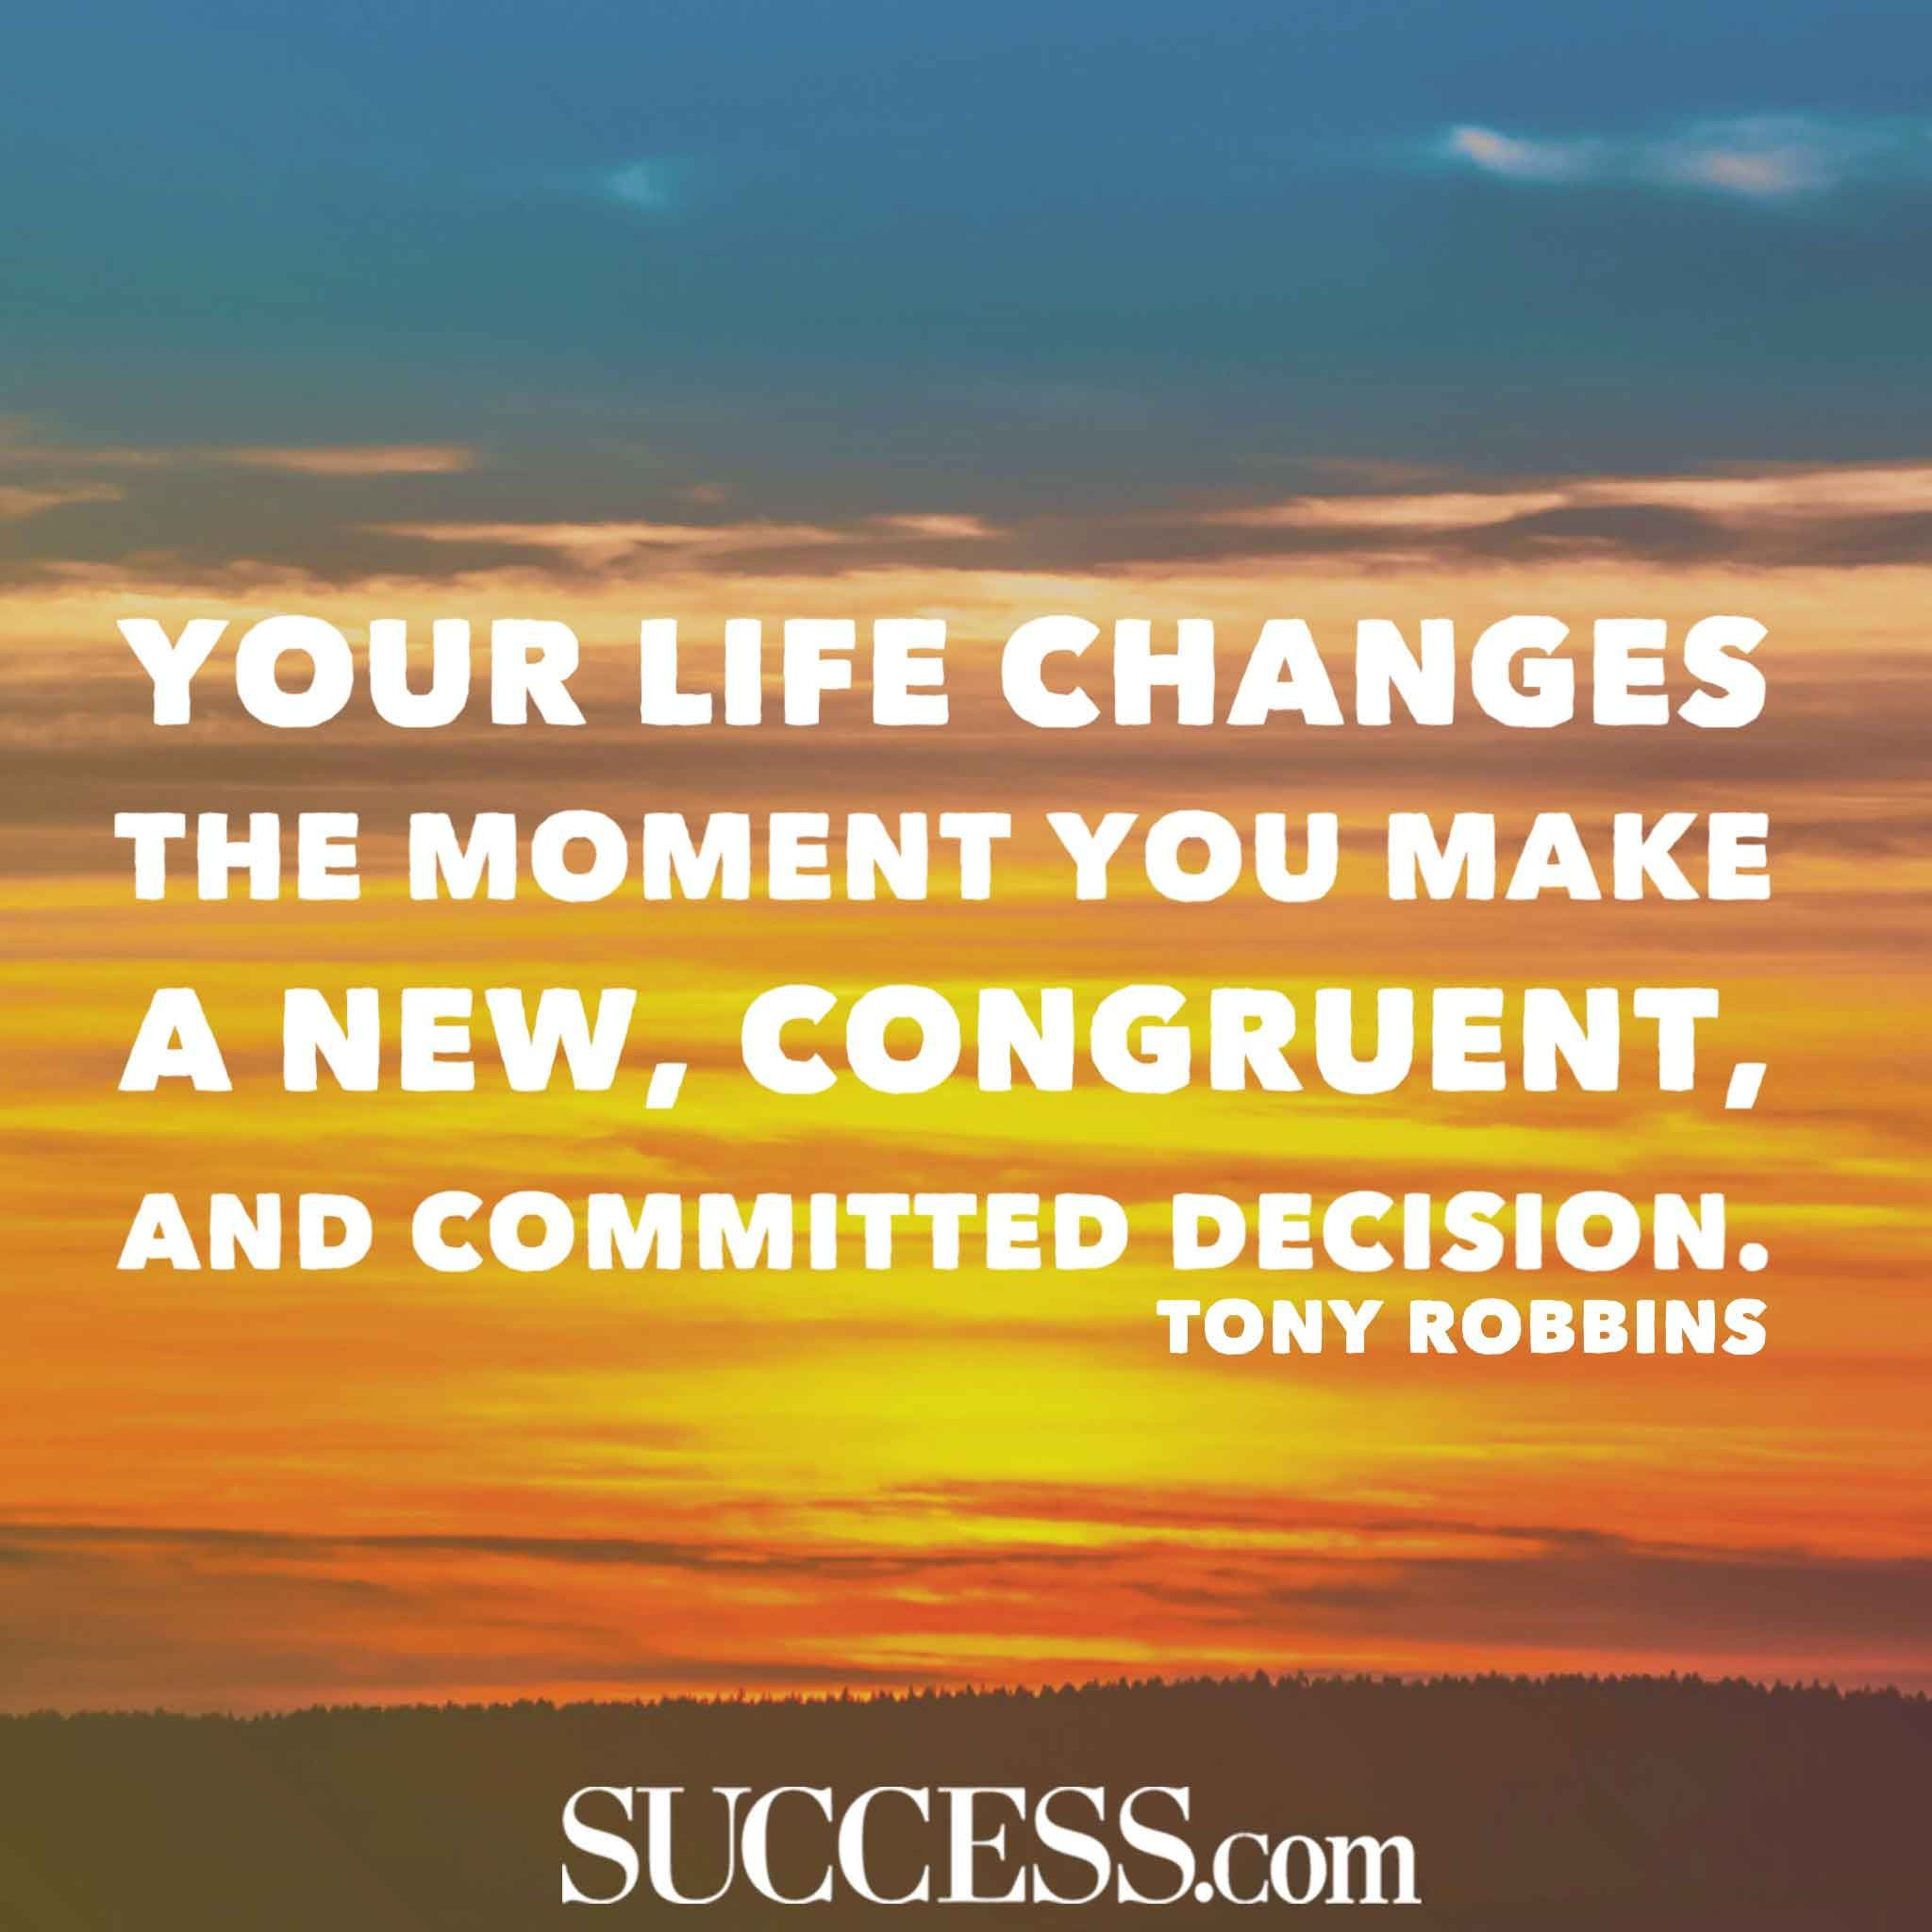 Life Changes Quotes 13 Quotes About Making Life Choices  Food For Thought  Pinterest